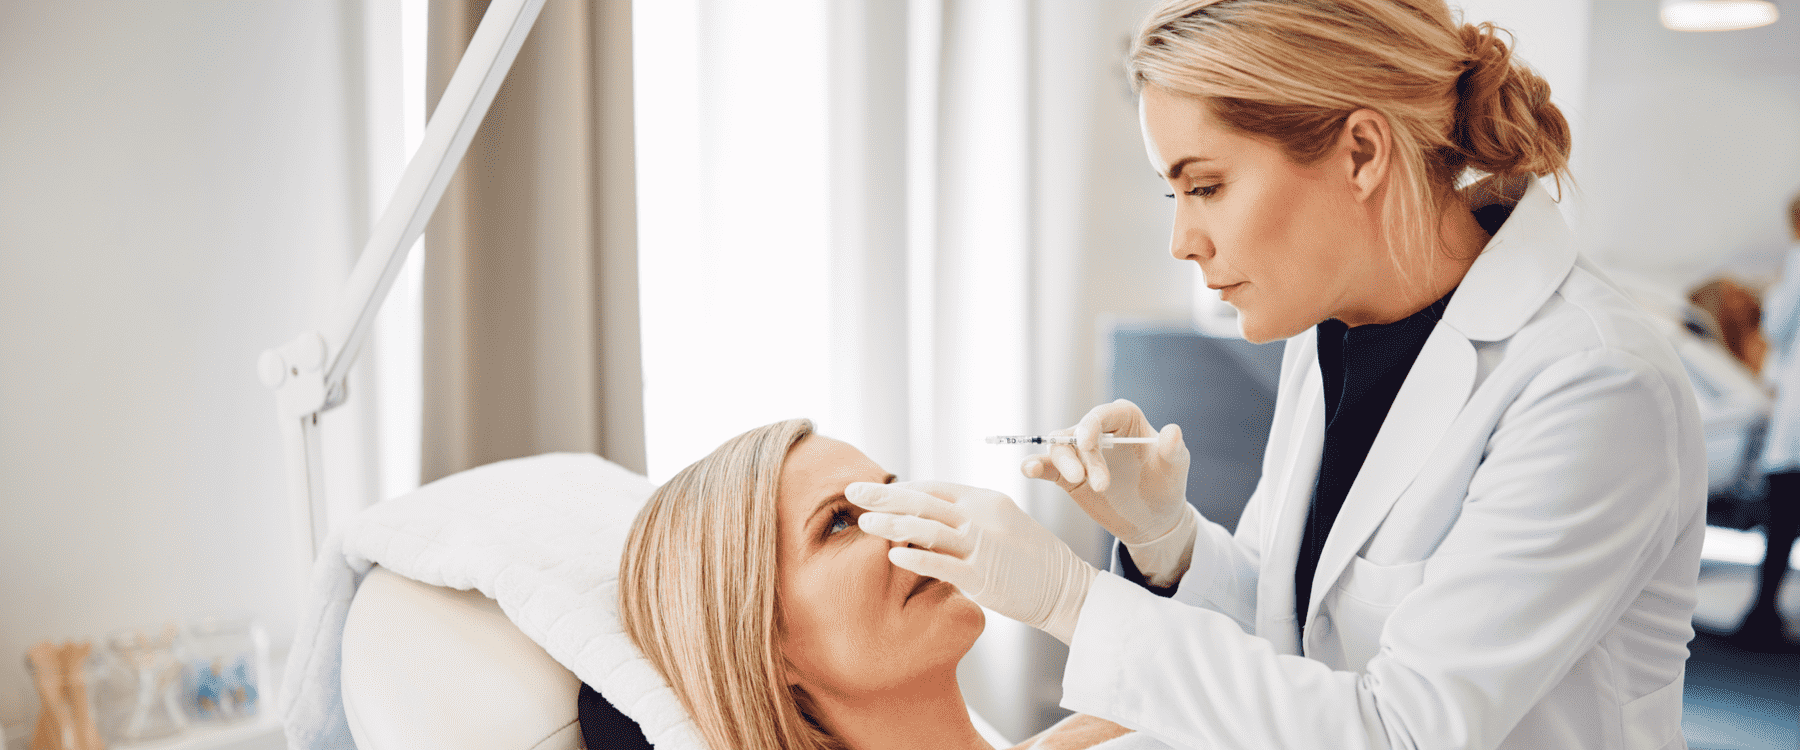 52852WA Graduate Diploma of Cosmetic Nursing and Injectables